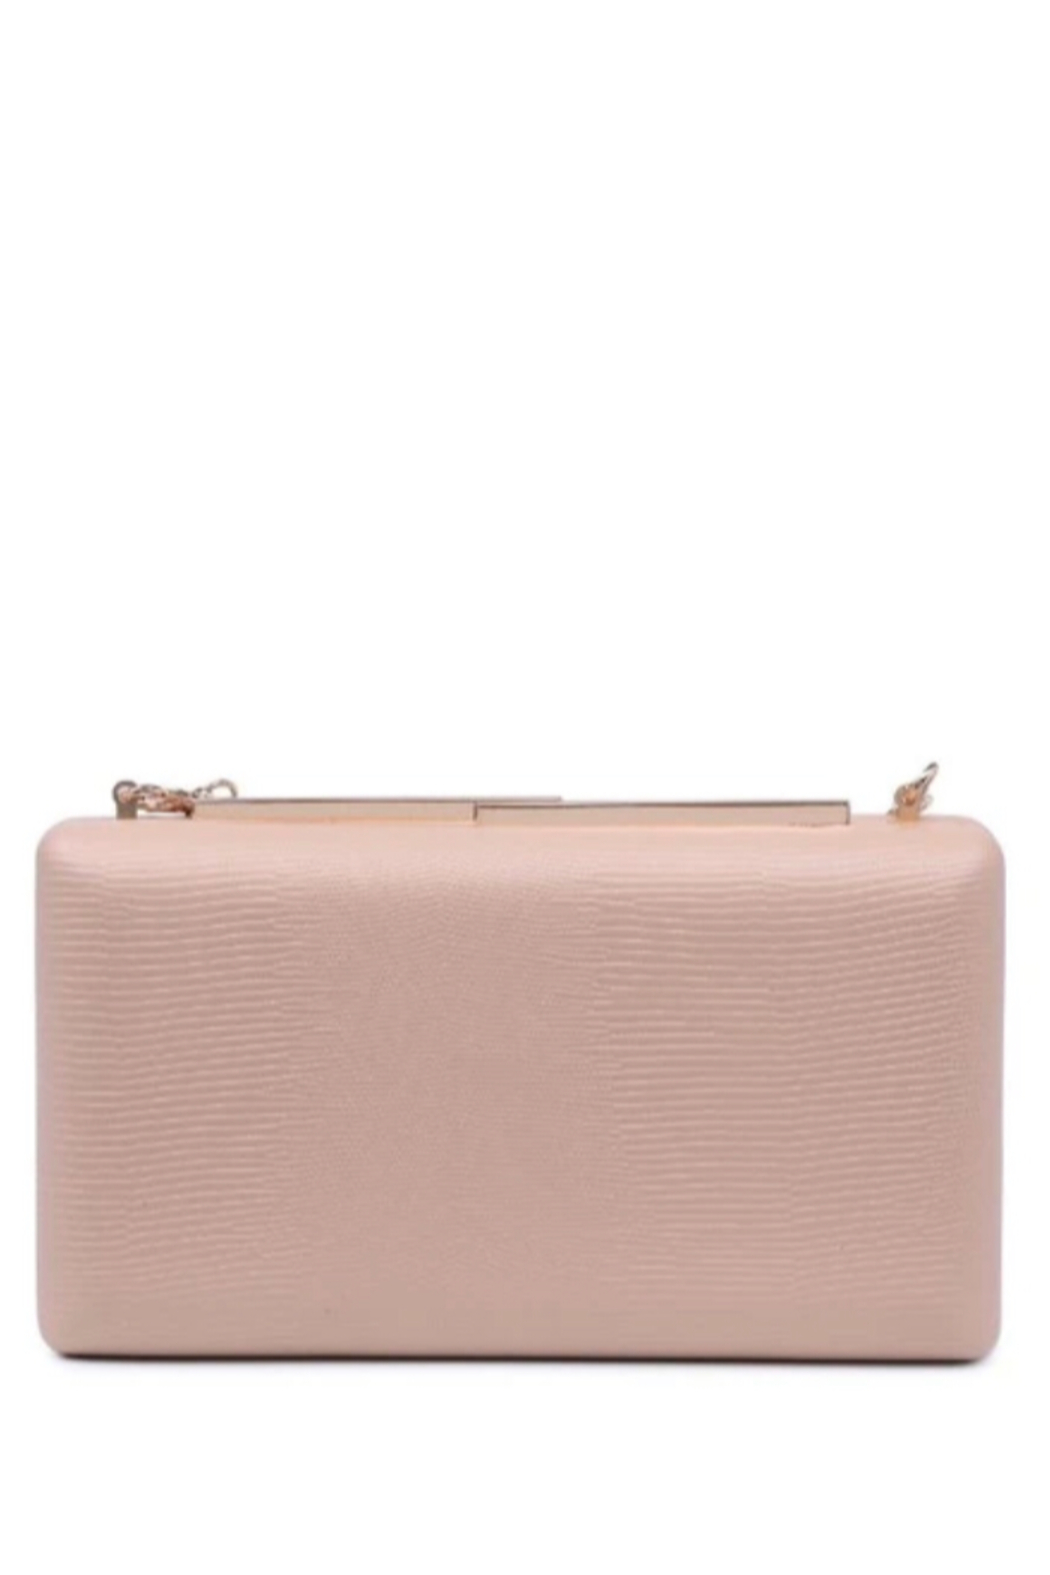 Urban Expression  Avis Crossbody/Clutch Bags - Side Cropped Image